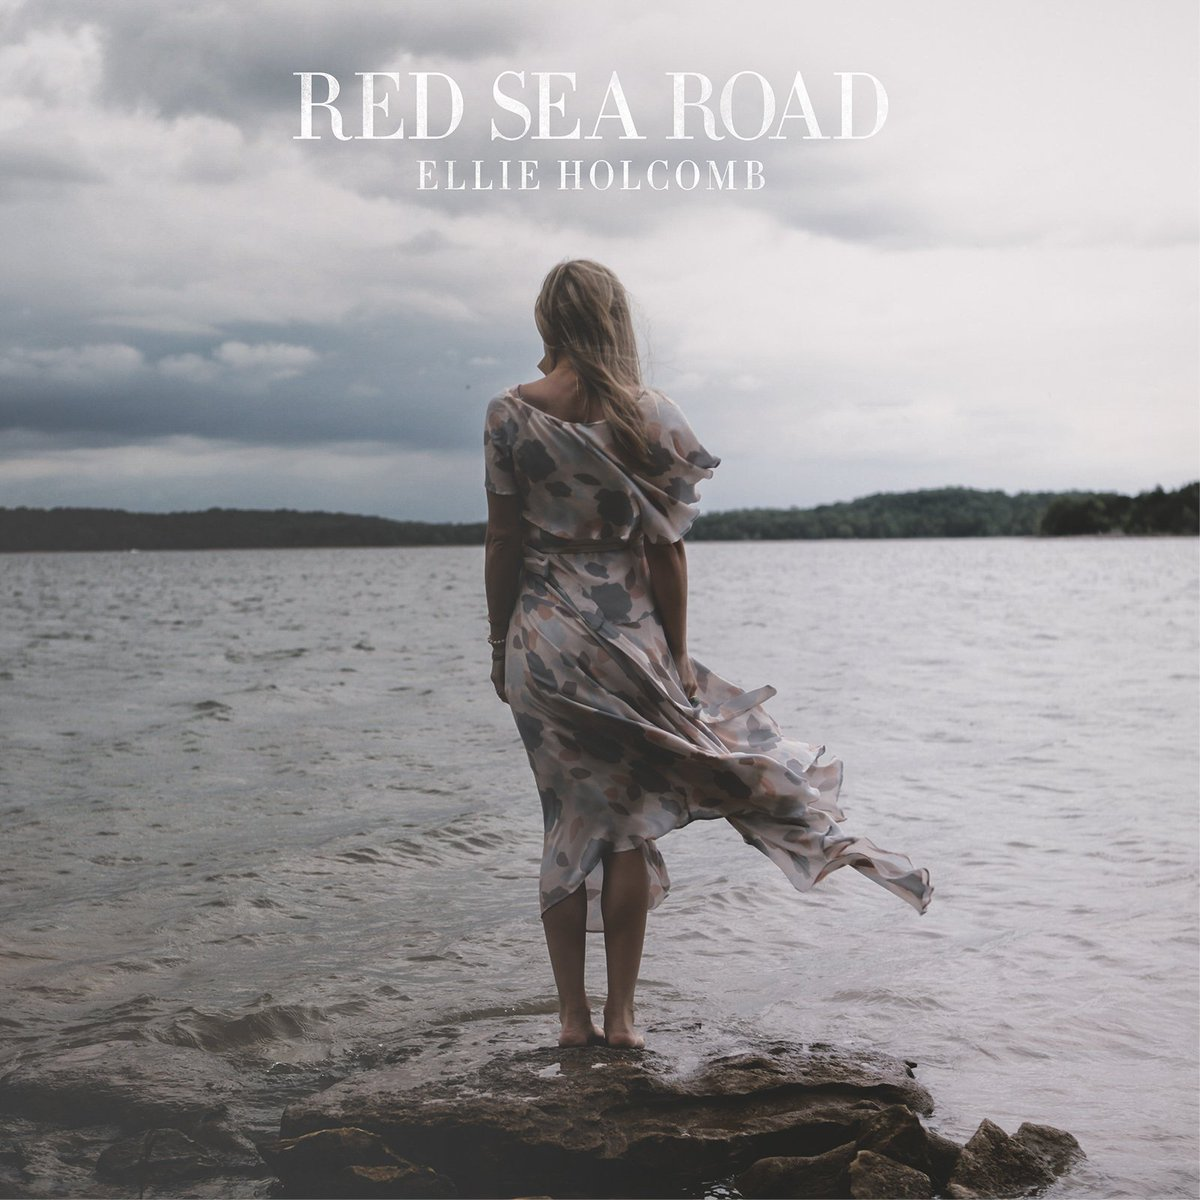 >>>Red Sea Road<<<          New Album              Available NOW! Help me tell the world?!  https://t.co/T76S9zvxw8 https://t.co/d2FdwkIasz